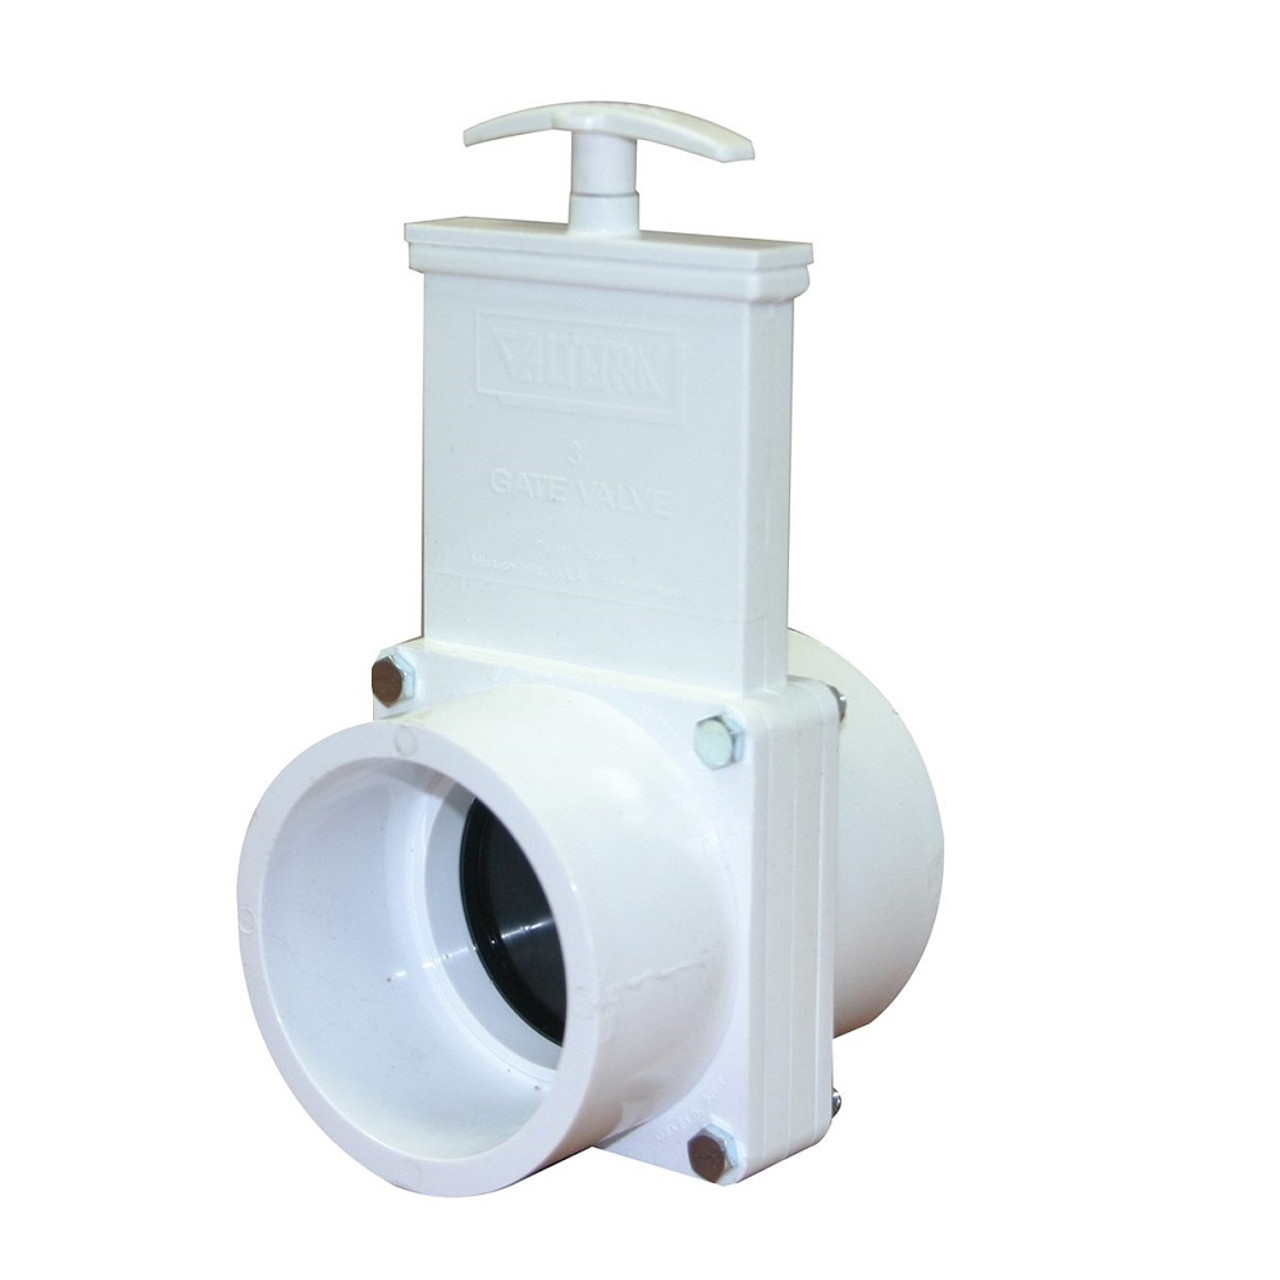 Pvc irrigation pipe fittings fitting side outletrgd